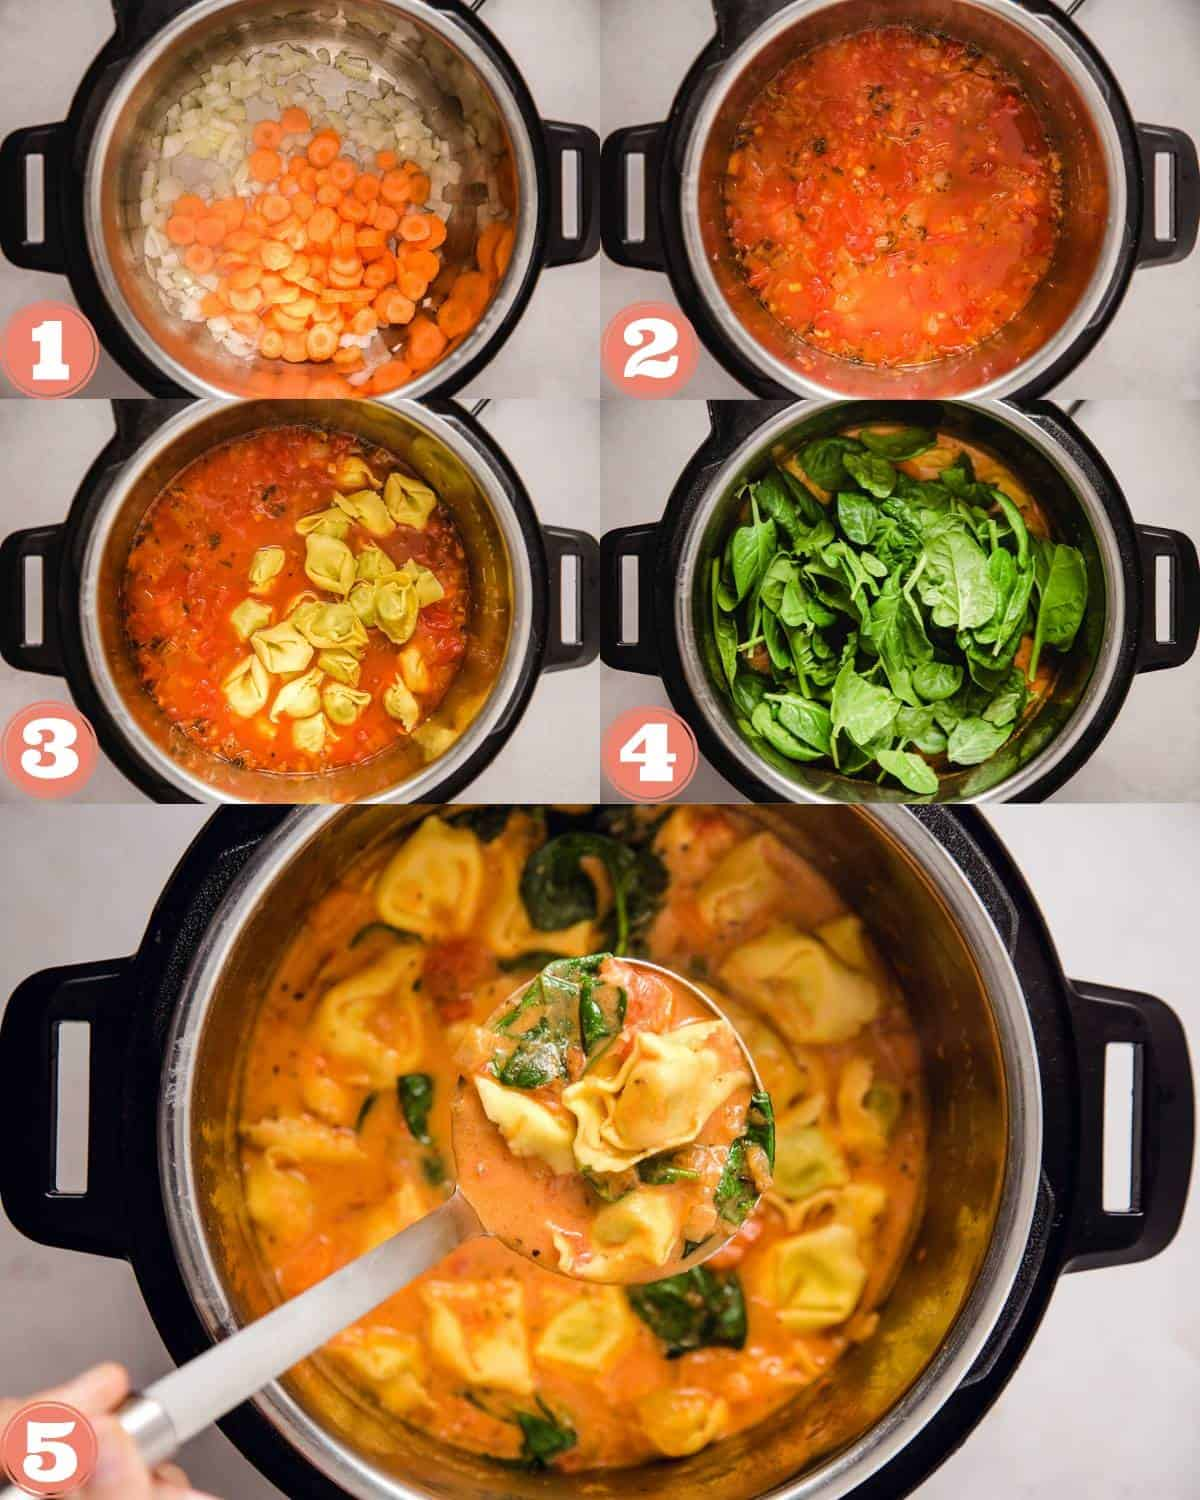 Steps on how to make tortellini soup in the instant pot